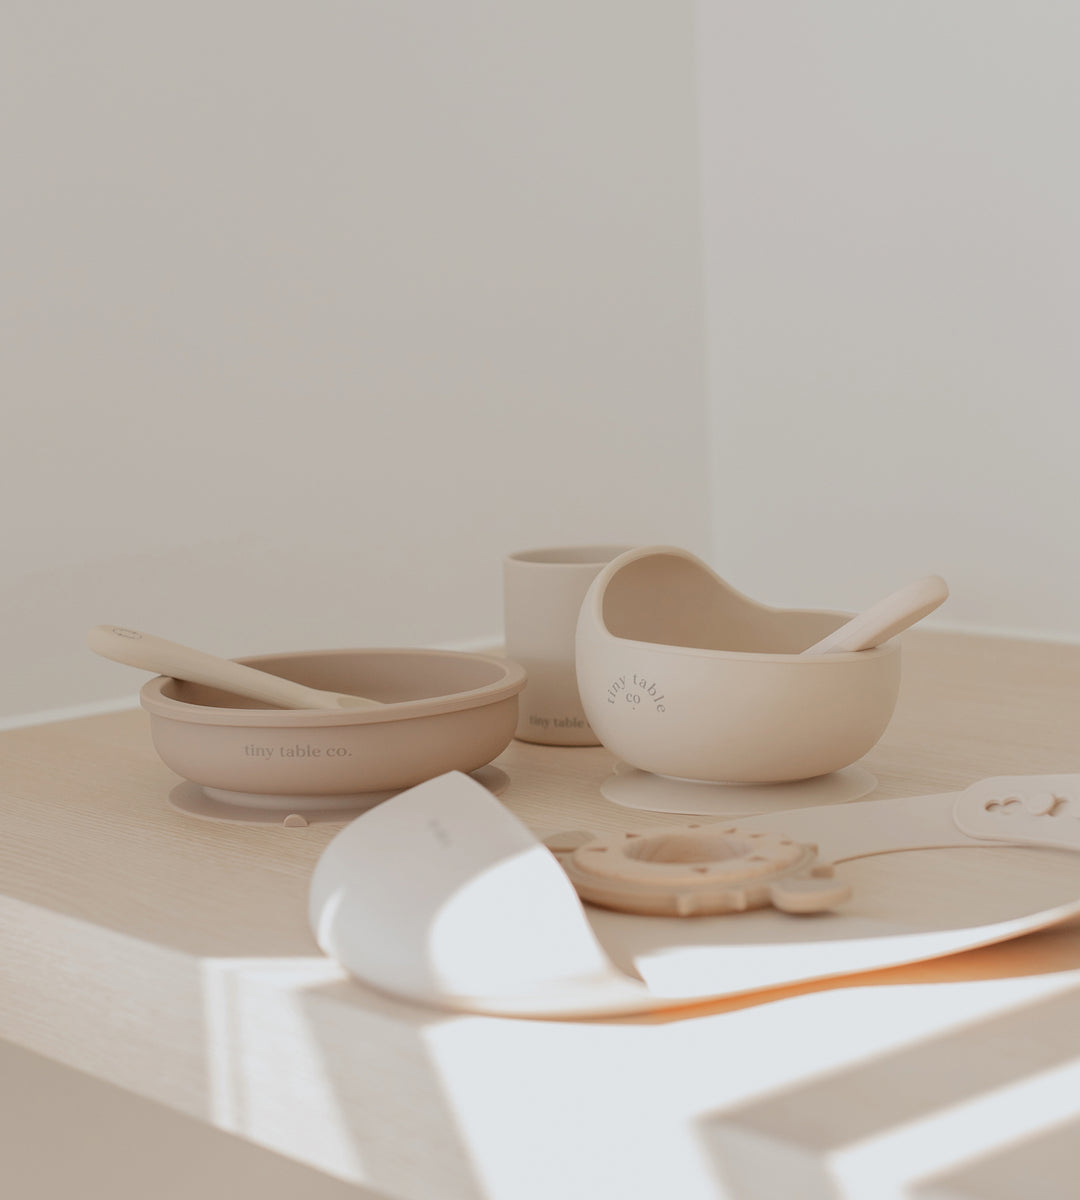 Tiny Table Co. | Suction Bowl and Spoon Set | Sand